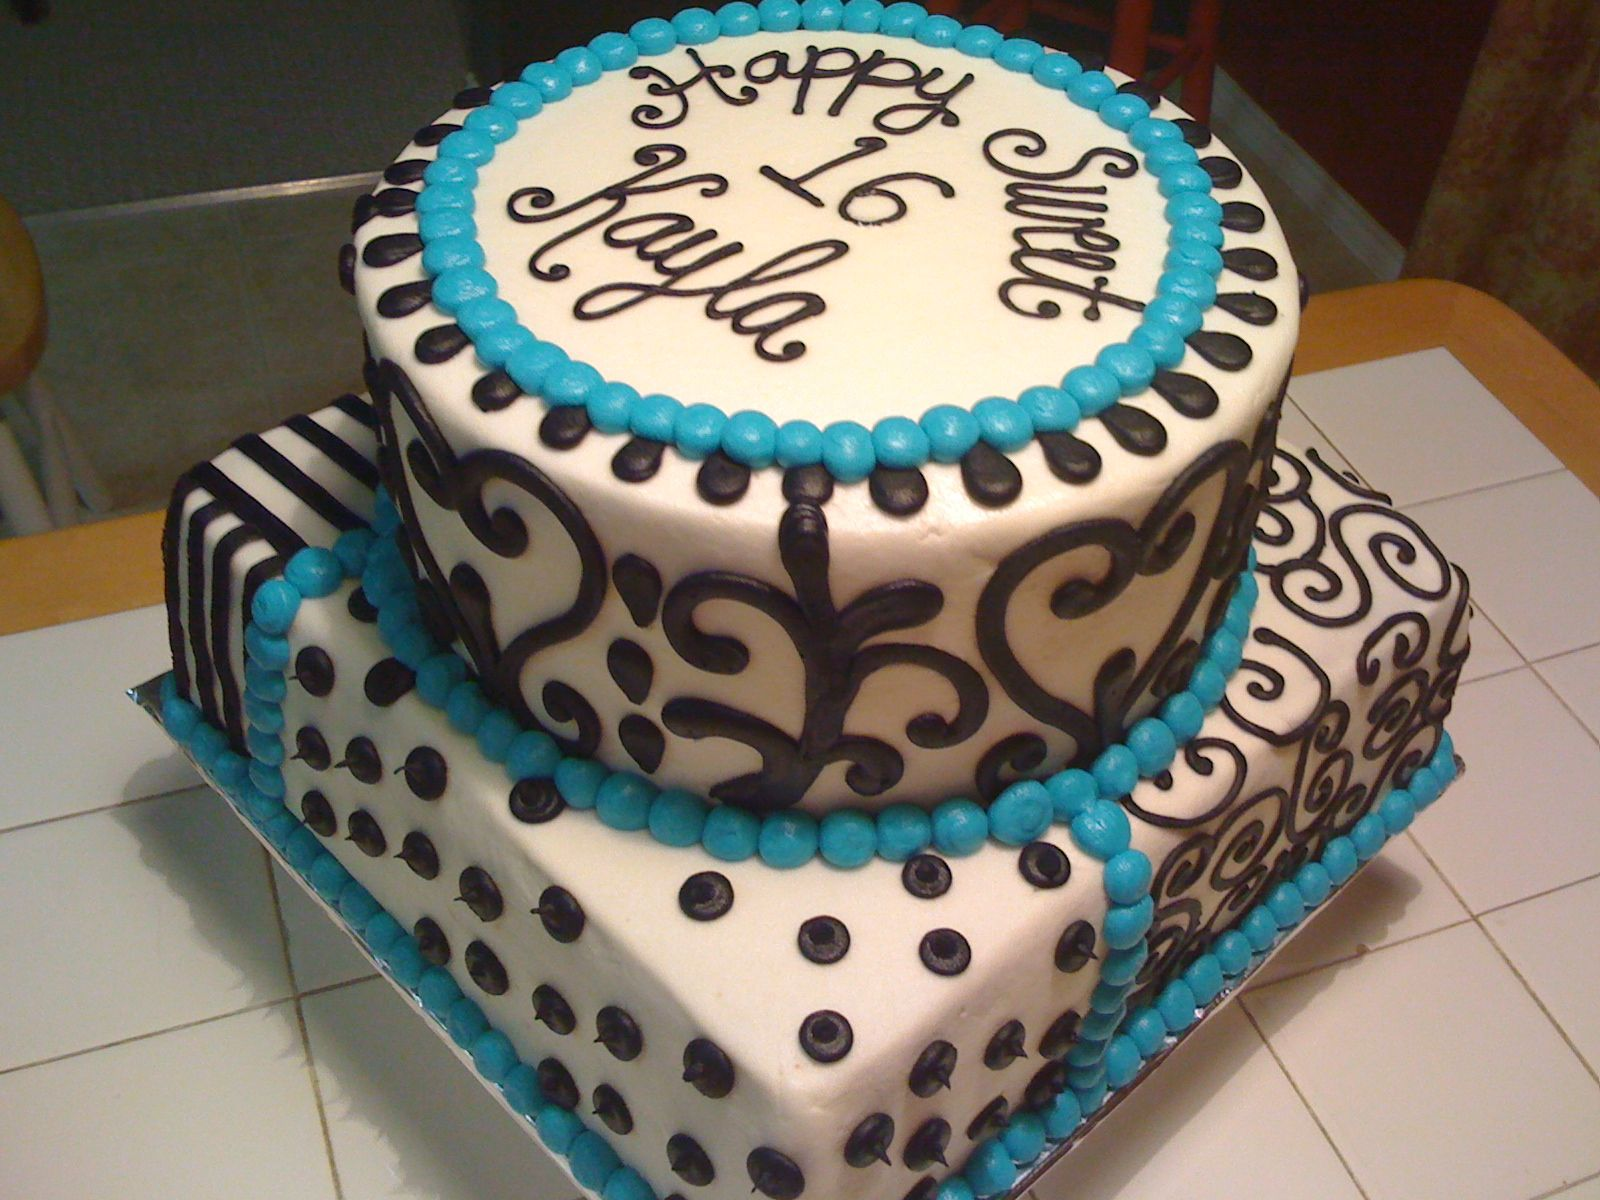 Square Two Layer Sweett 16 Cake 12 Inch Double Layer Square